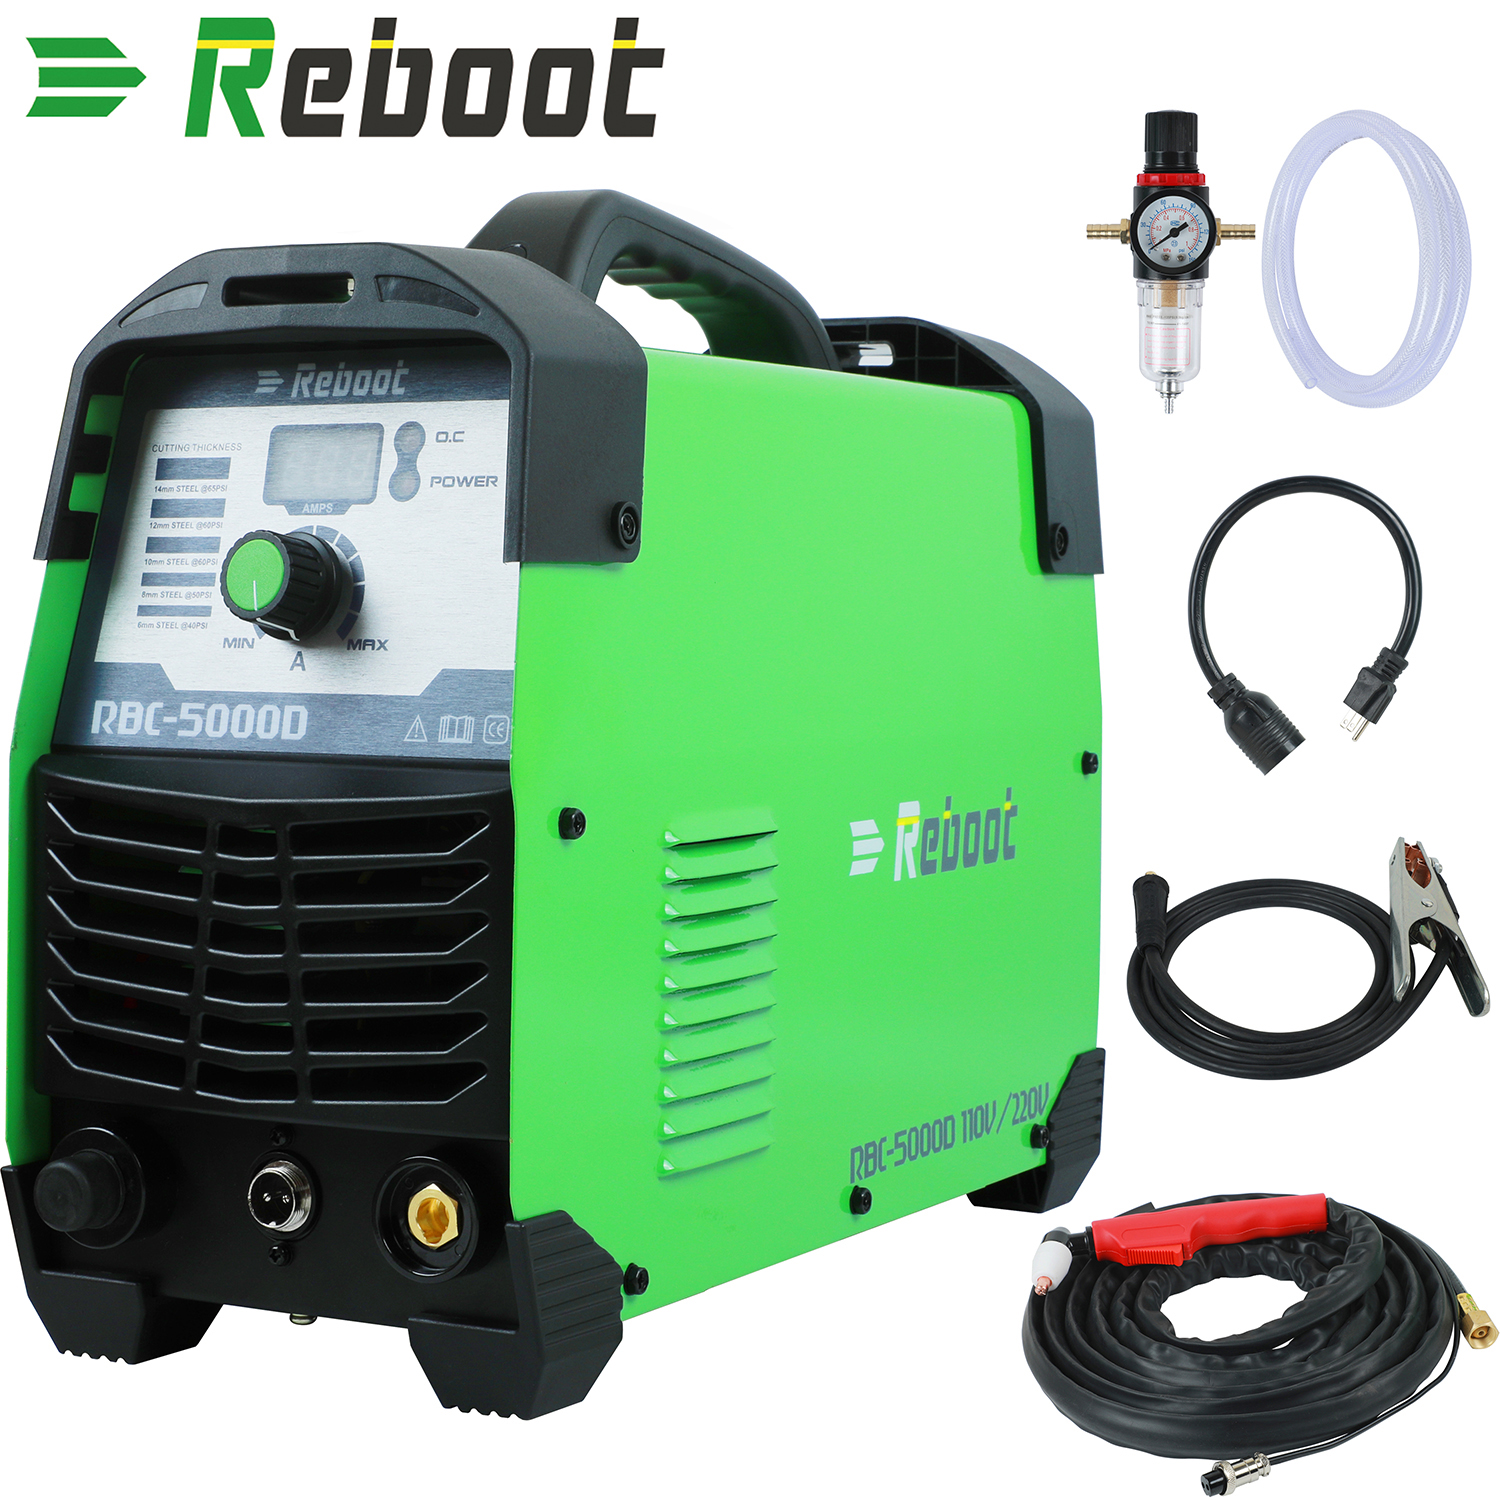 Reboot Cutter Welder 50 A Dual Voltage 110/220V Plasma Cut 50D Portable Welding Machine Intelligent Digital Display Cutting Tool